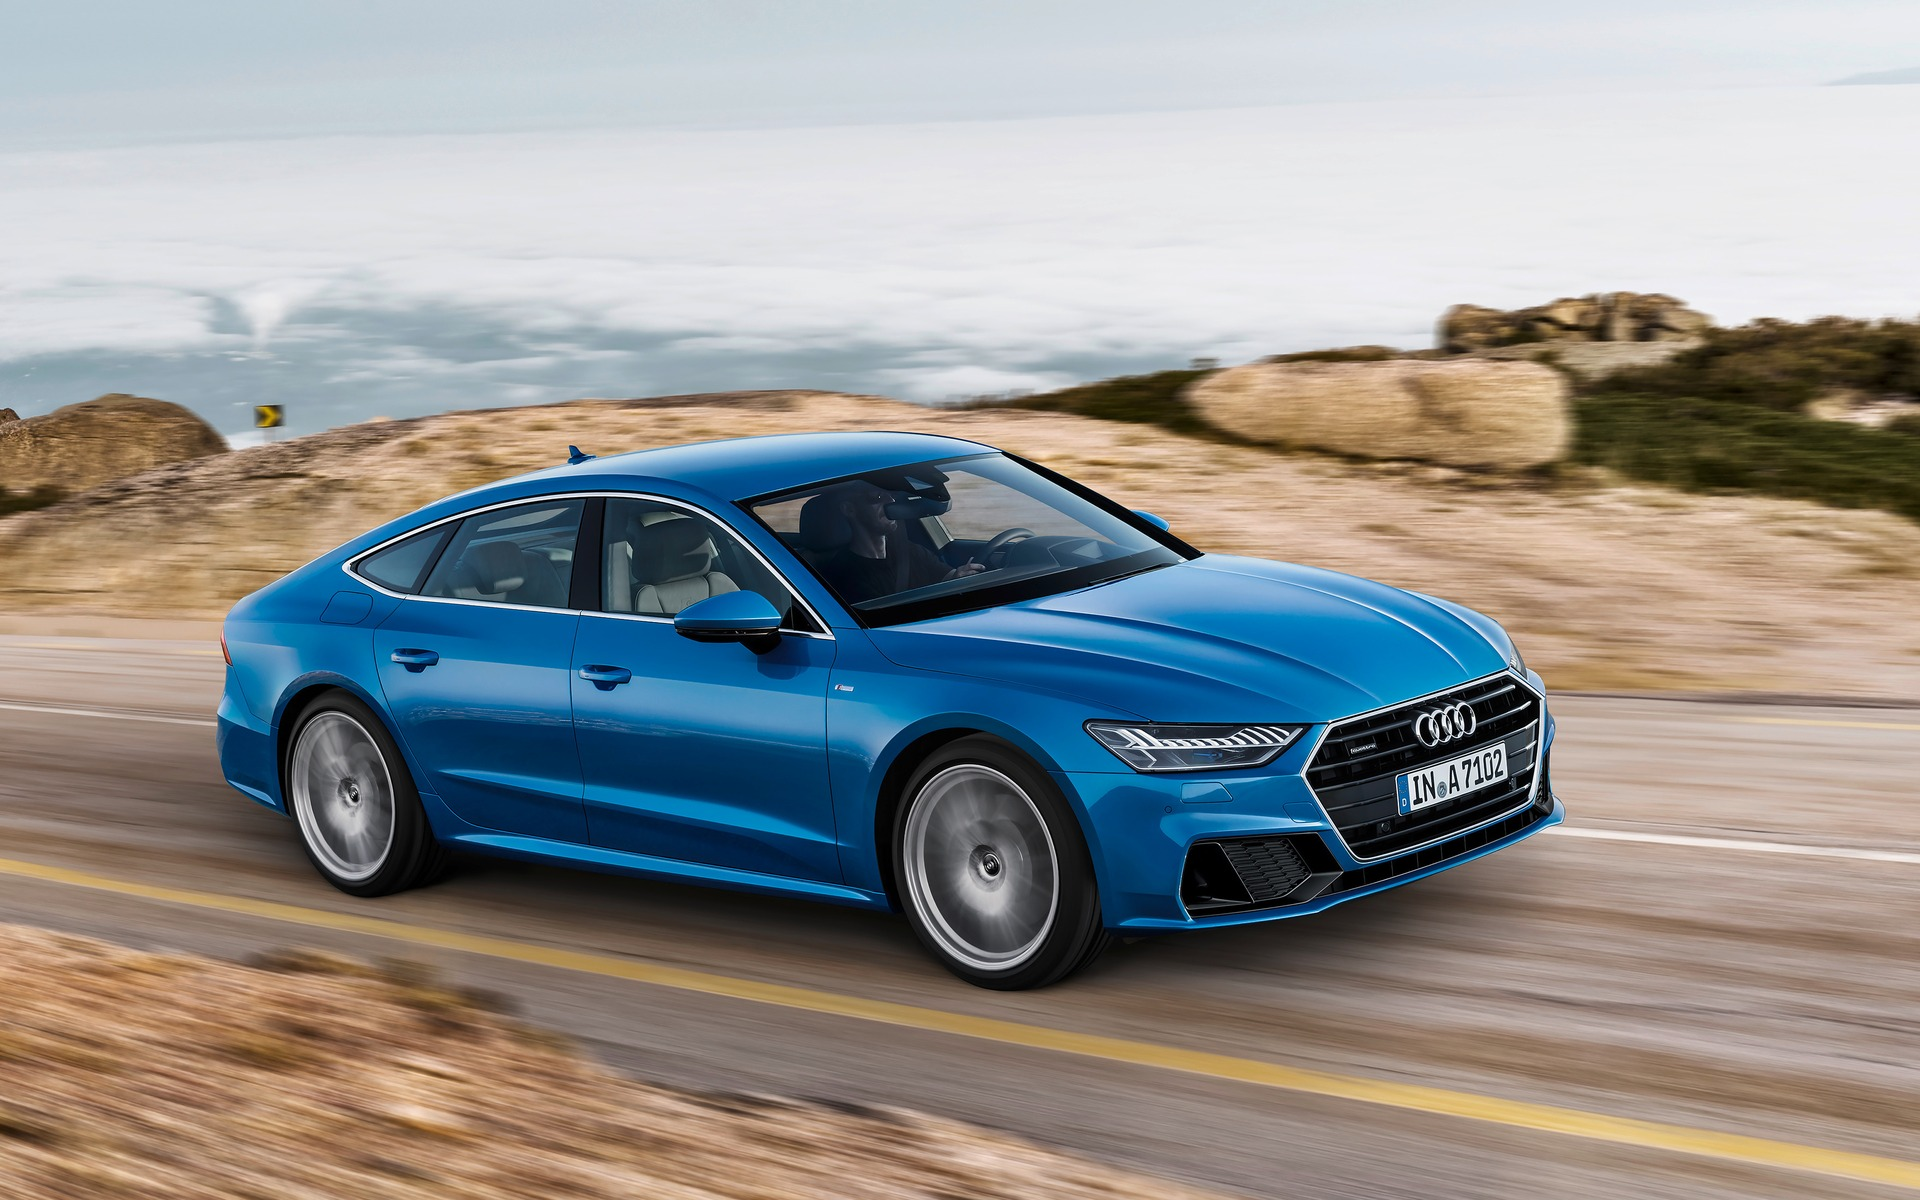 2019 Audi A7 Sportback Generation Two The Car Guide